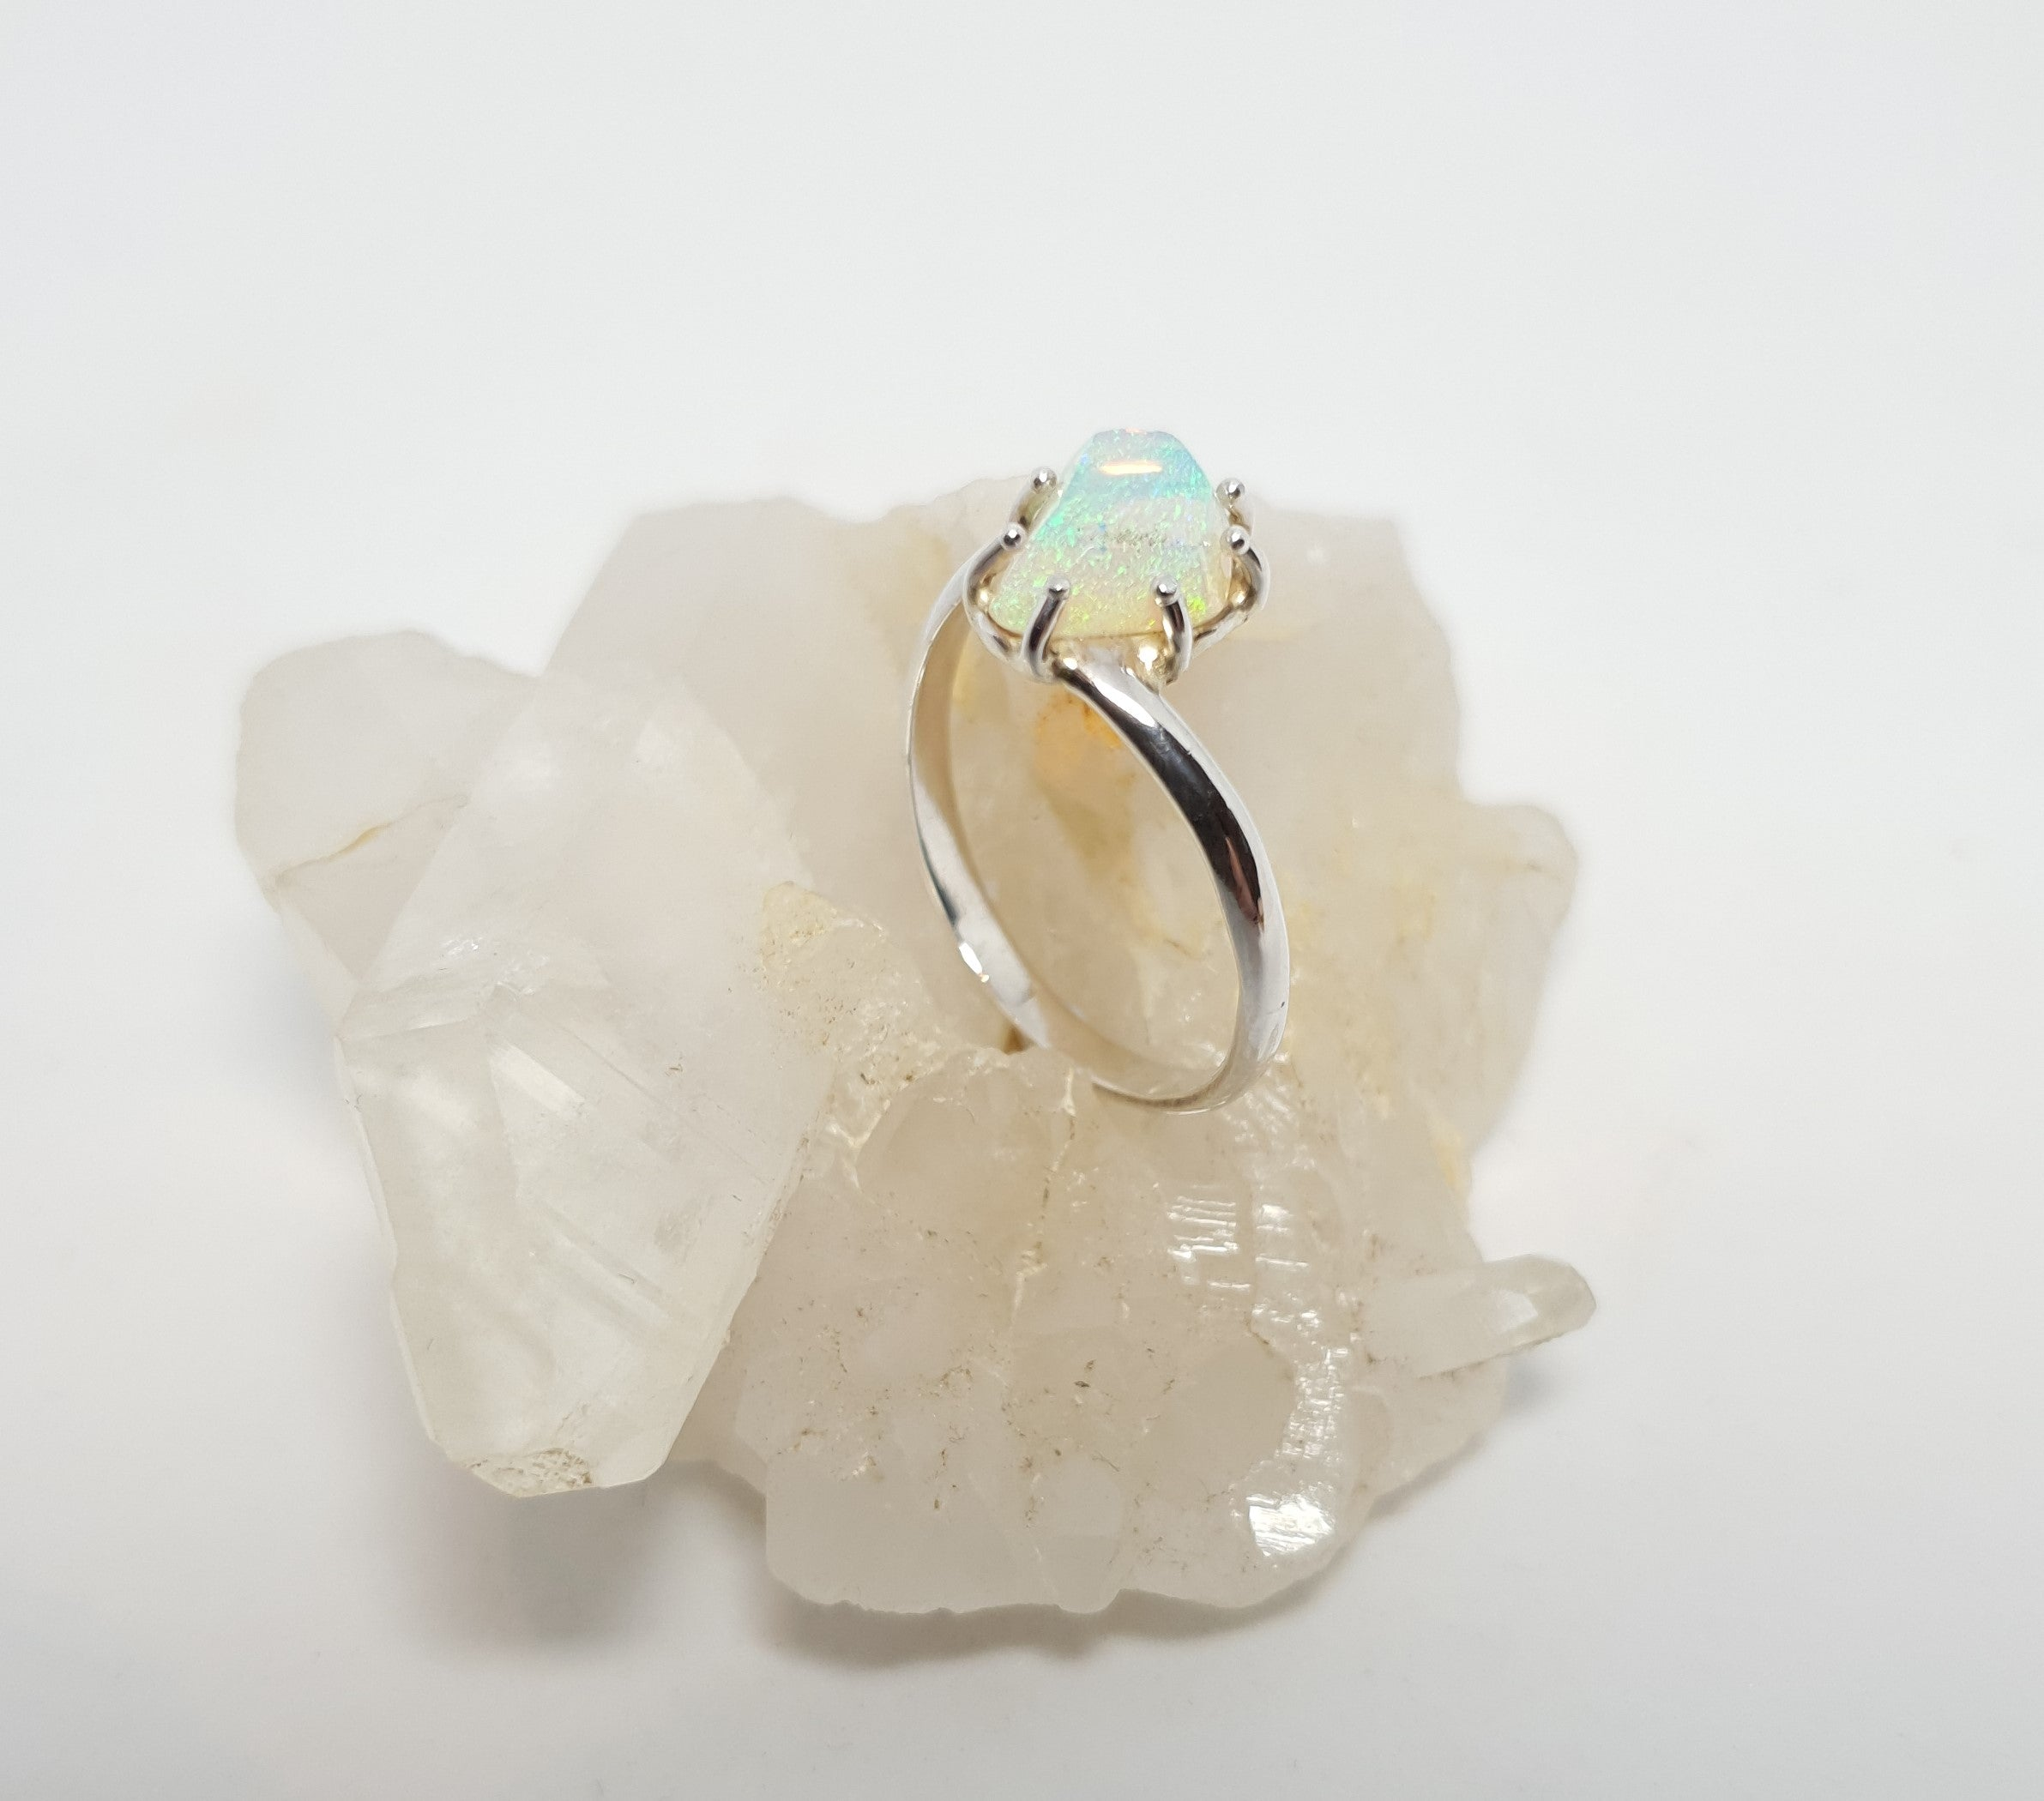 Queensland Crystal Seam Opal Ring 058E